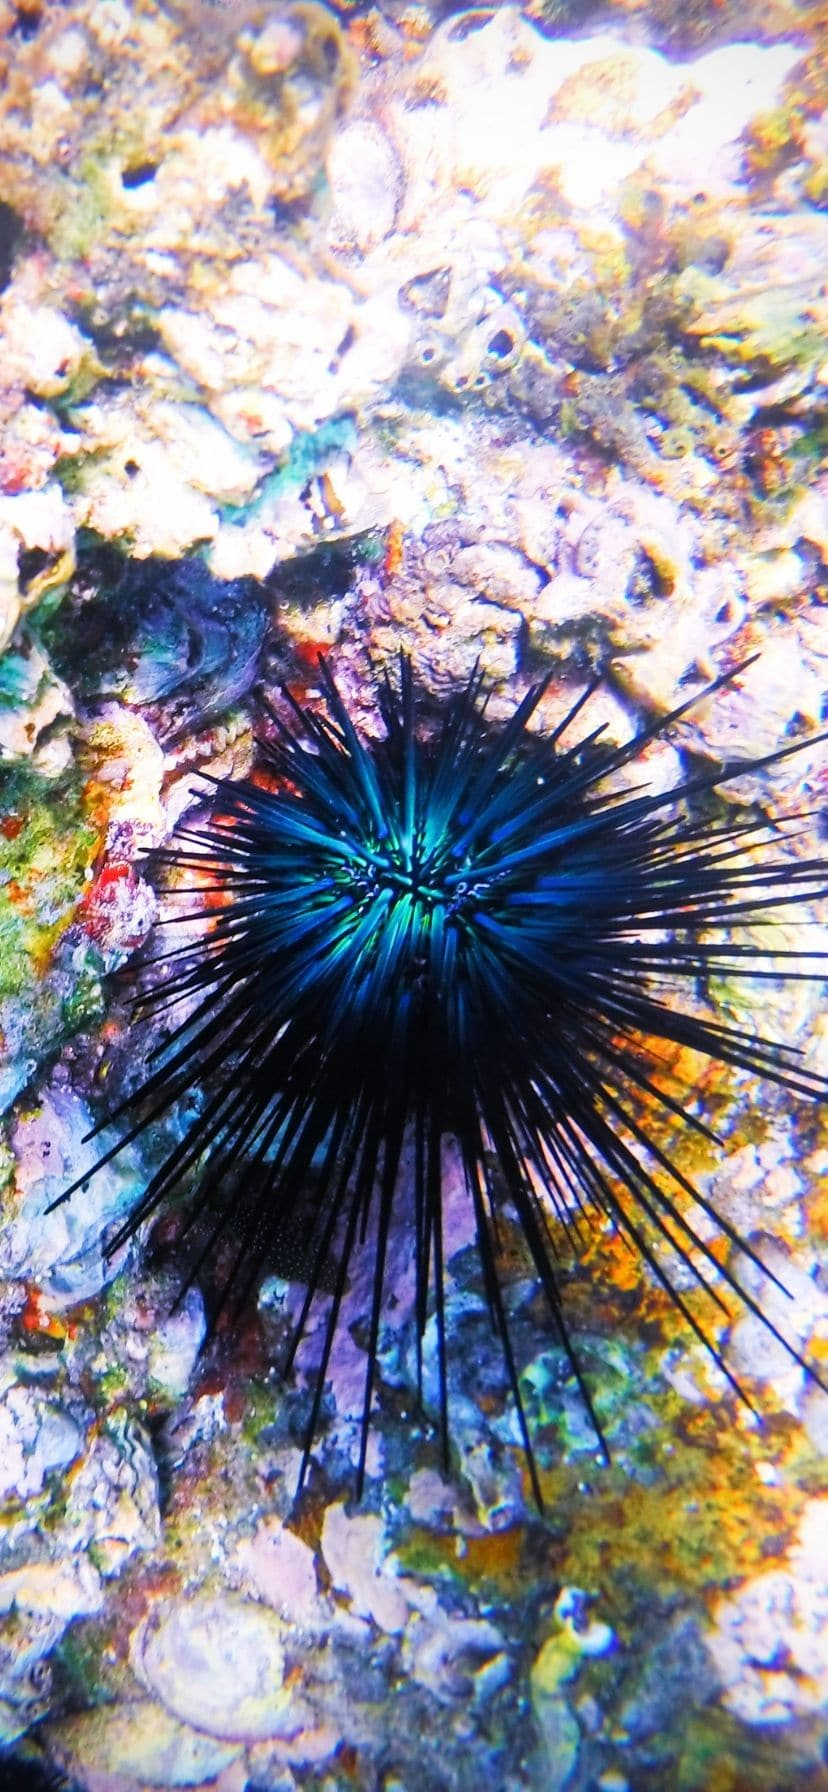 Colorful Sea Urchin at Cannery Beach, snorkeling Cabo San Lucas, Mexico